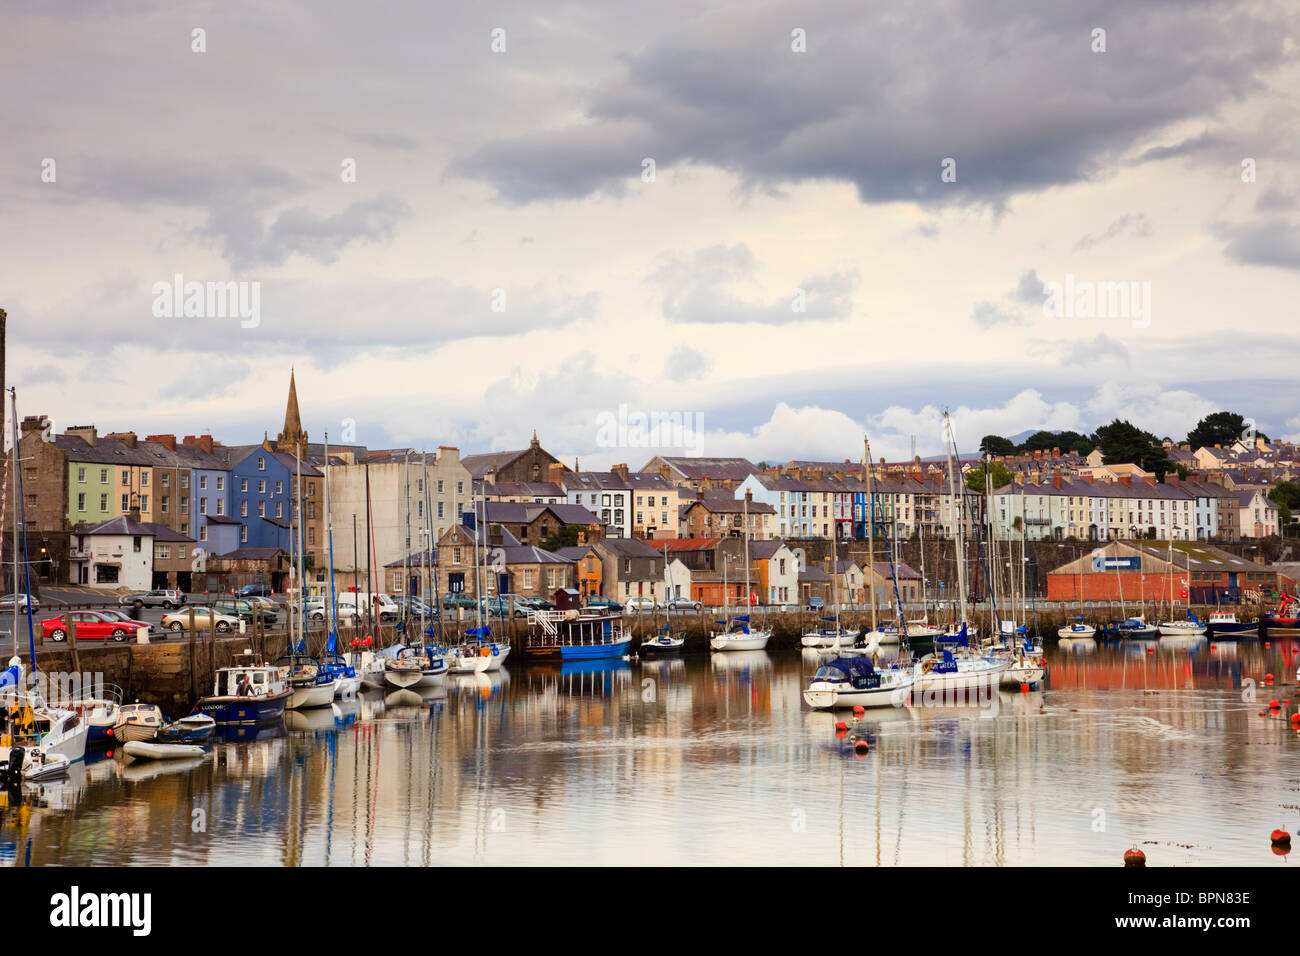 Boats moored by fishing port quay on Afon Seiont River with riverside town houses on waterfront beyond. Caernarfon, - Stock Image